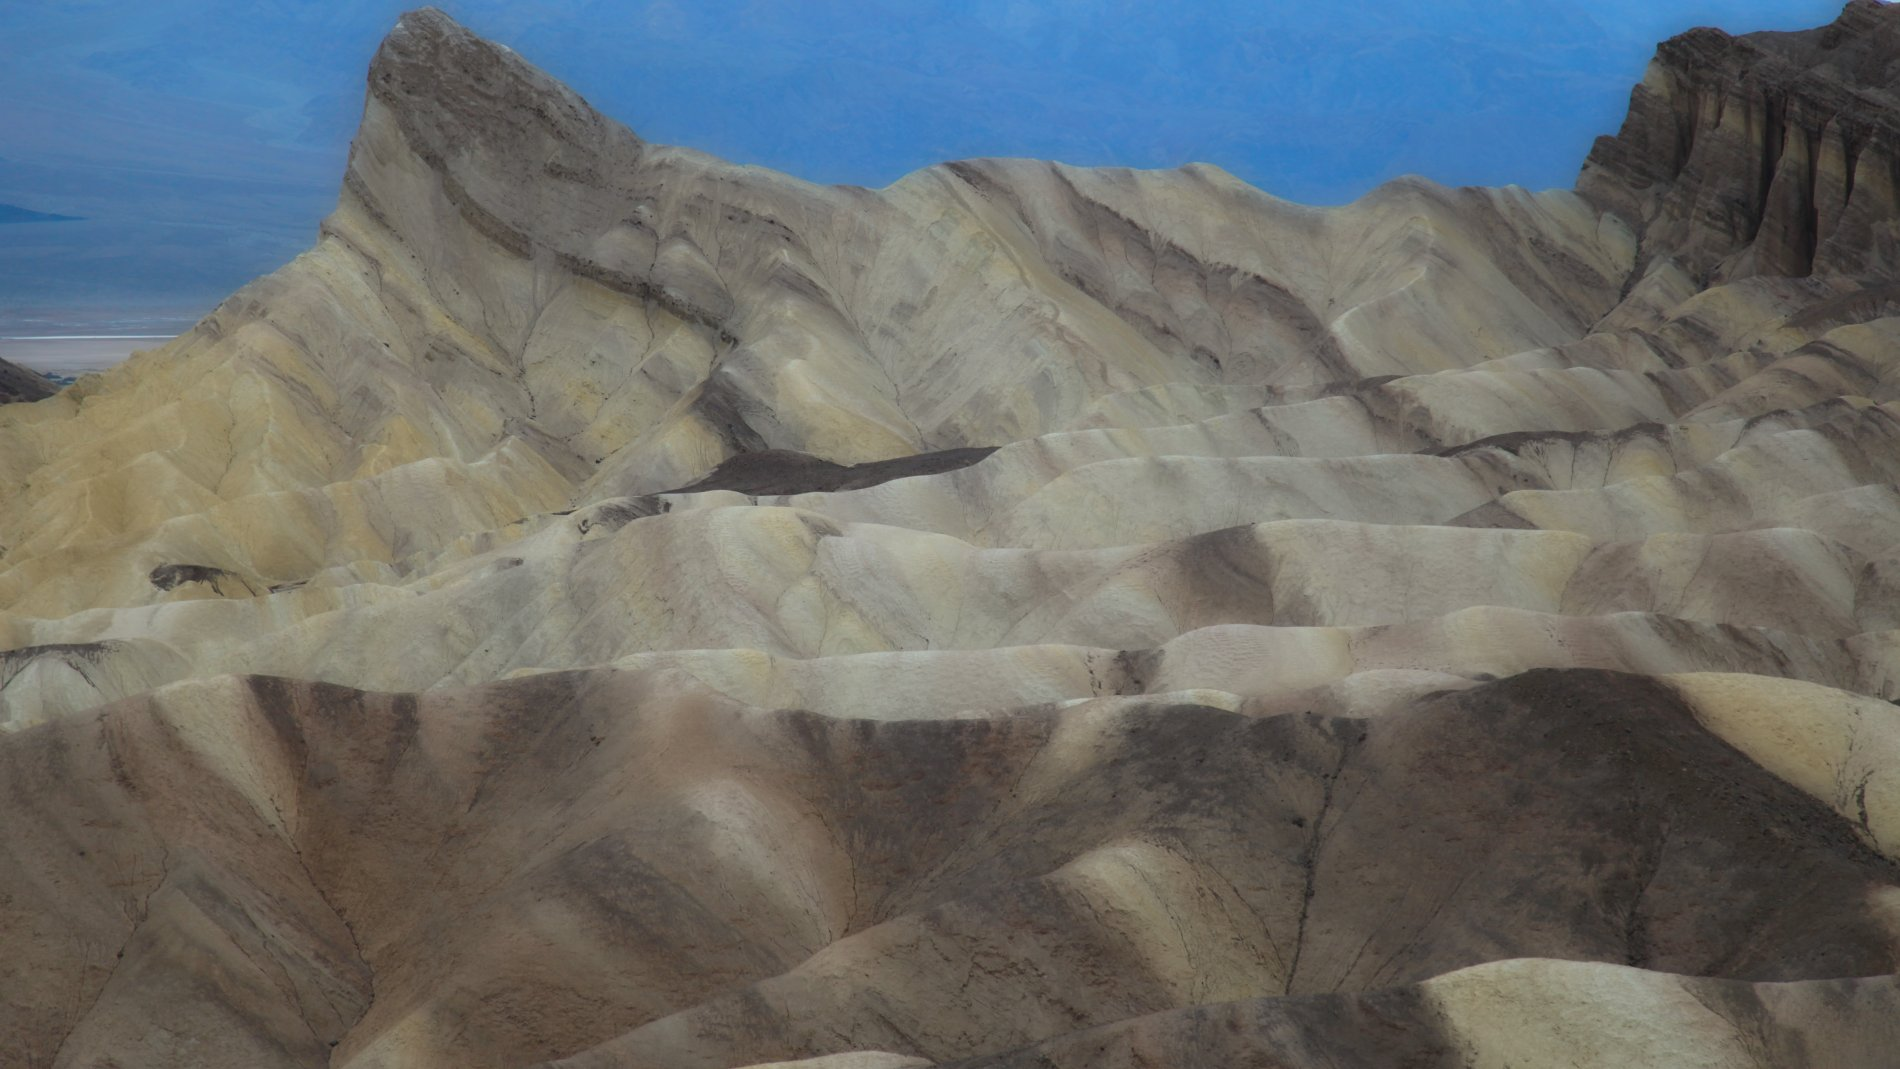 IMG_1111.JPG: Zabriskie Point, Death Valley